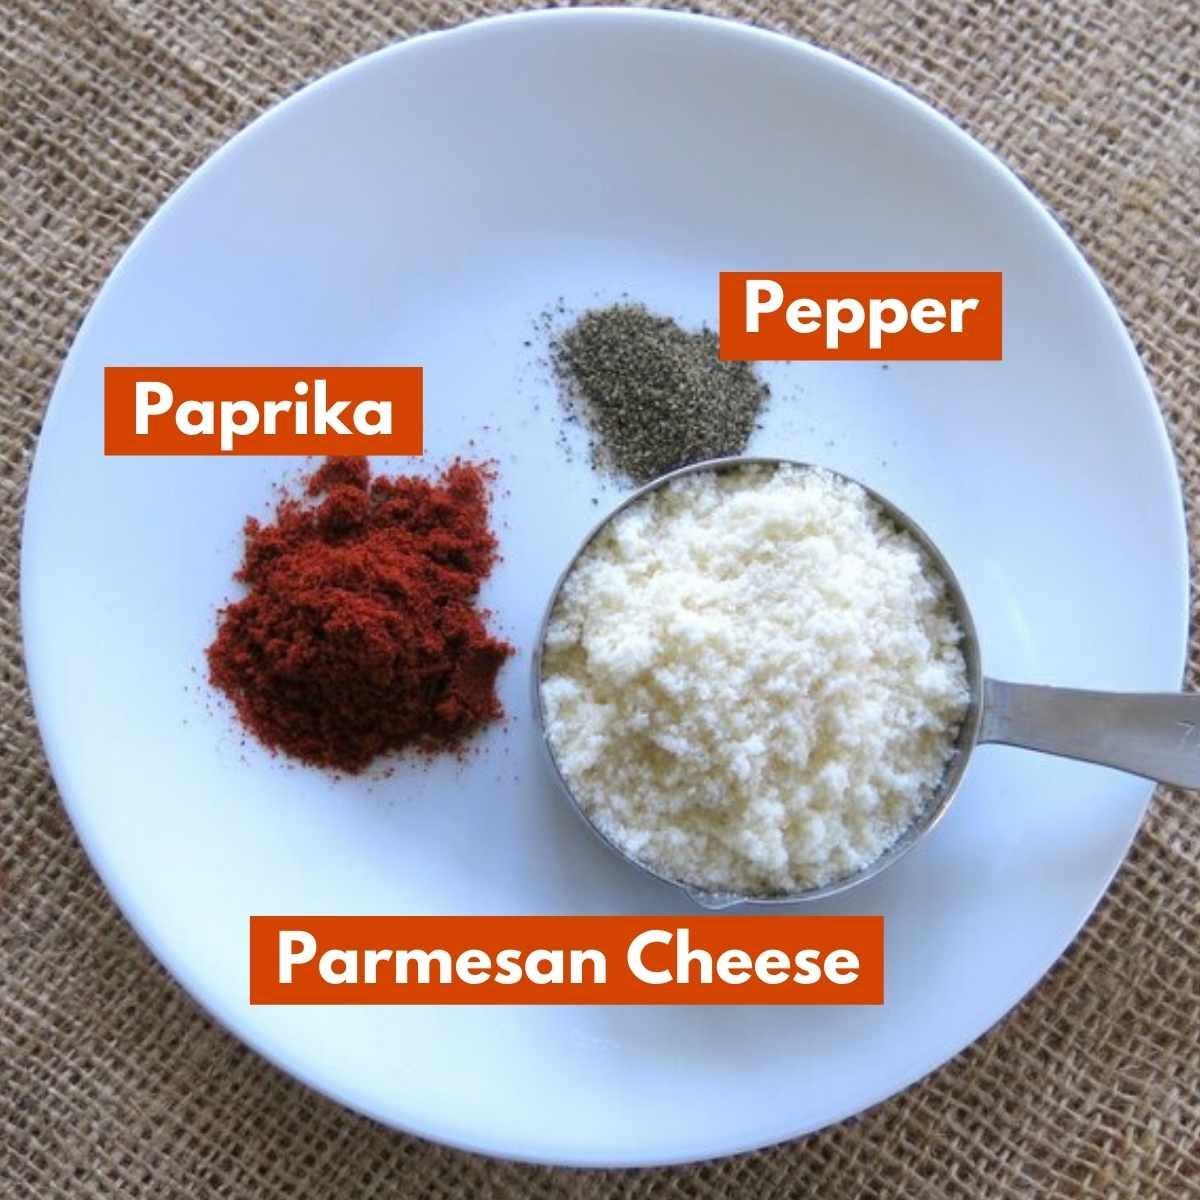 Ingredient graphic for breading with Parmesan cheese, paprika and pepper labeled.